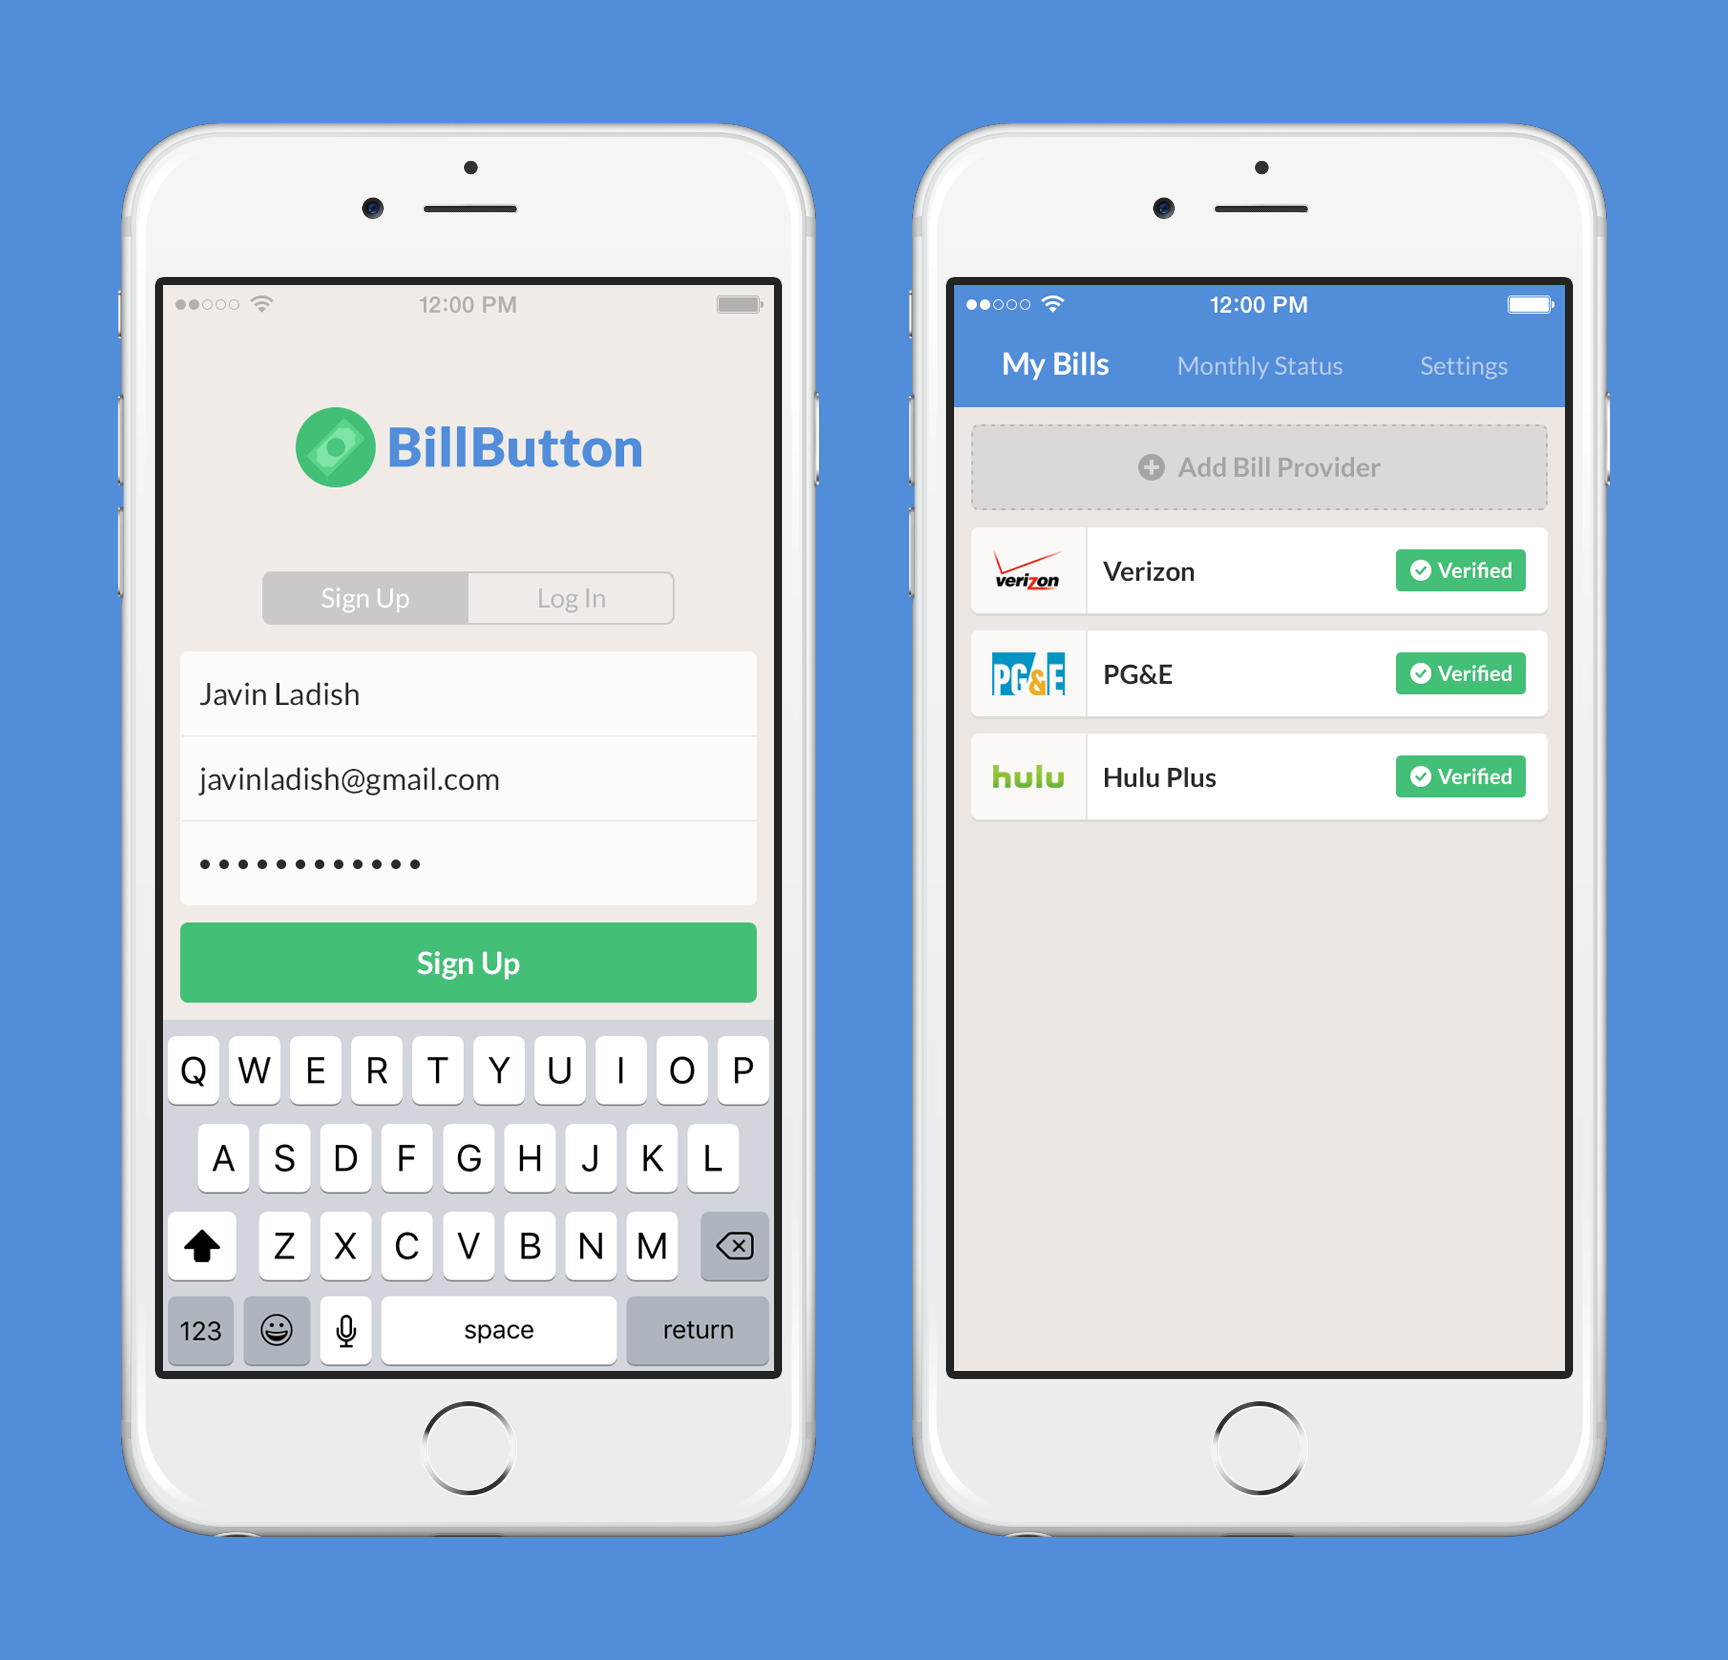 BillButton App Design